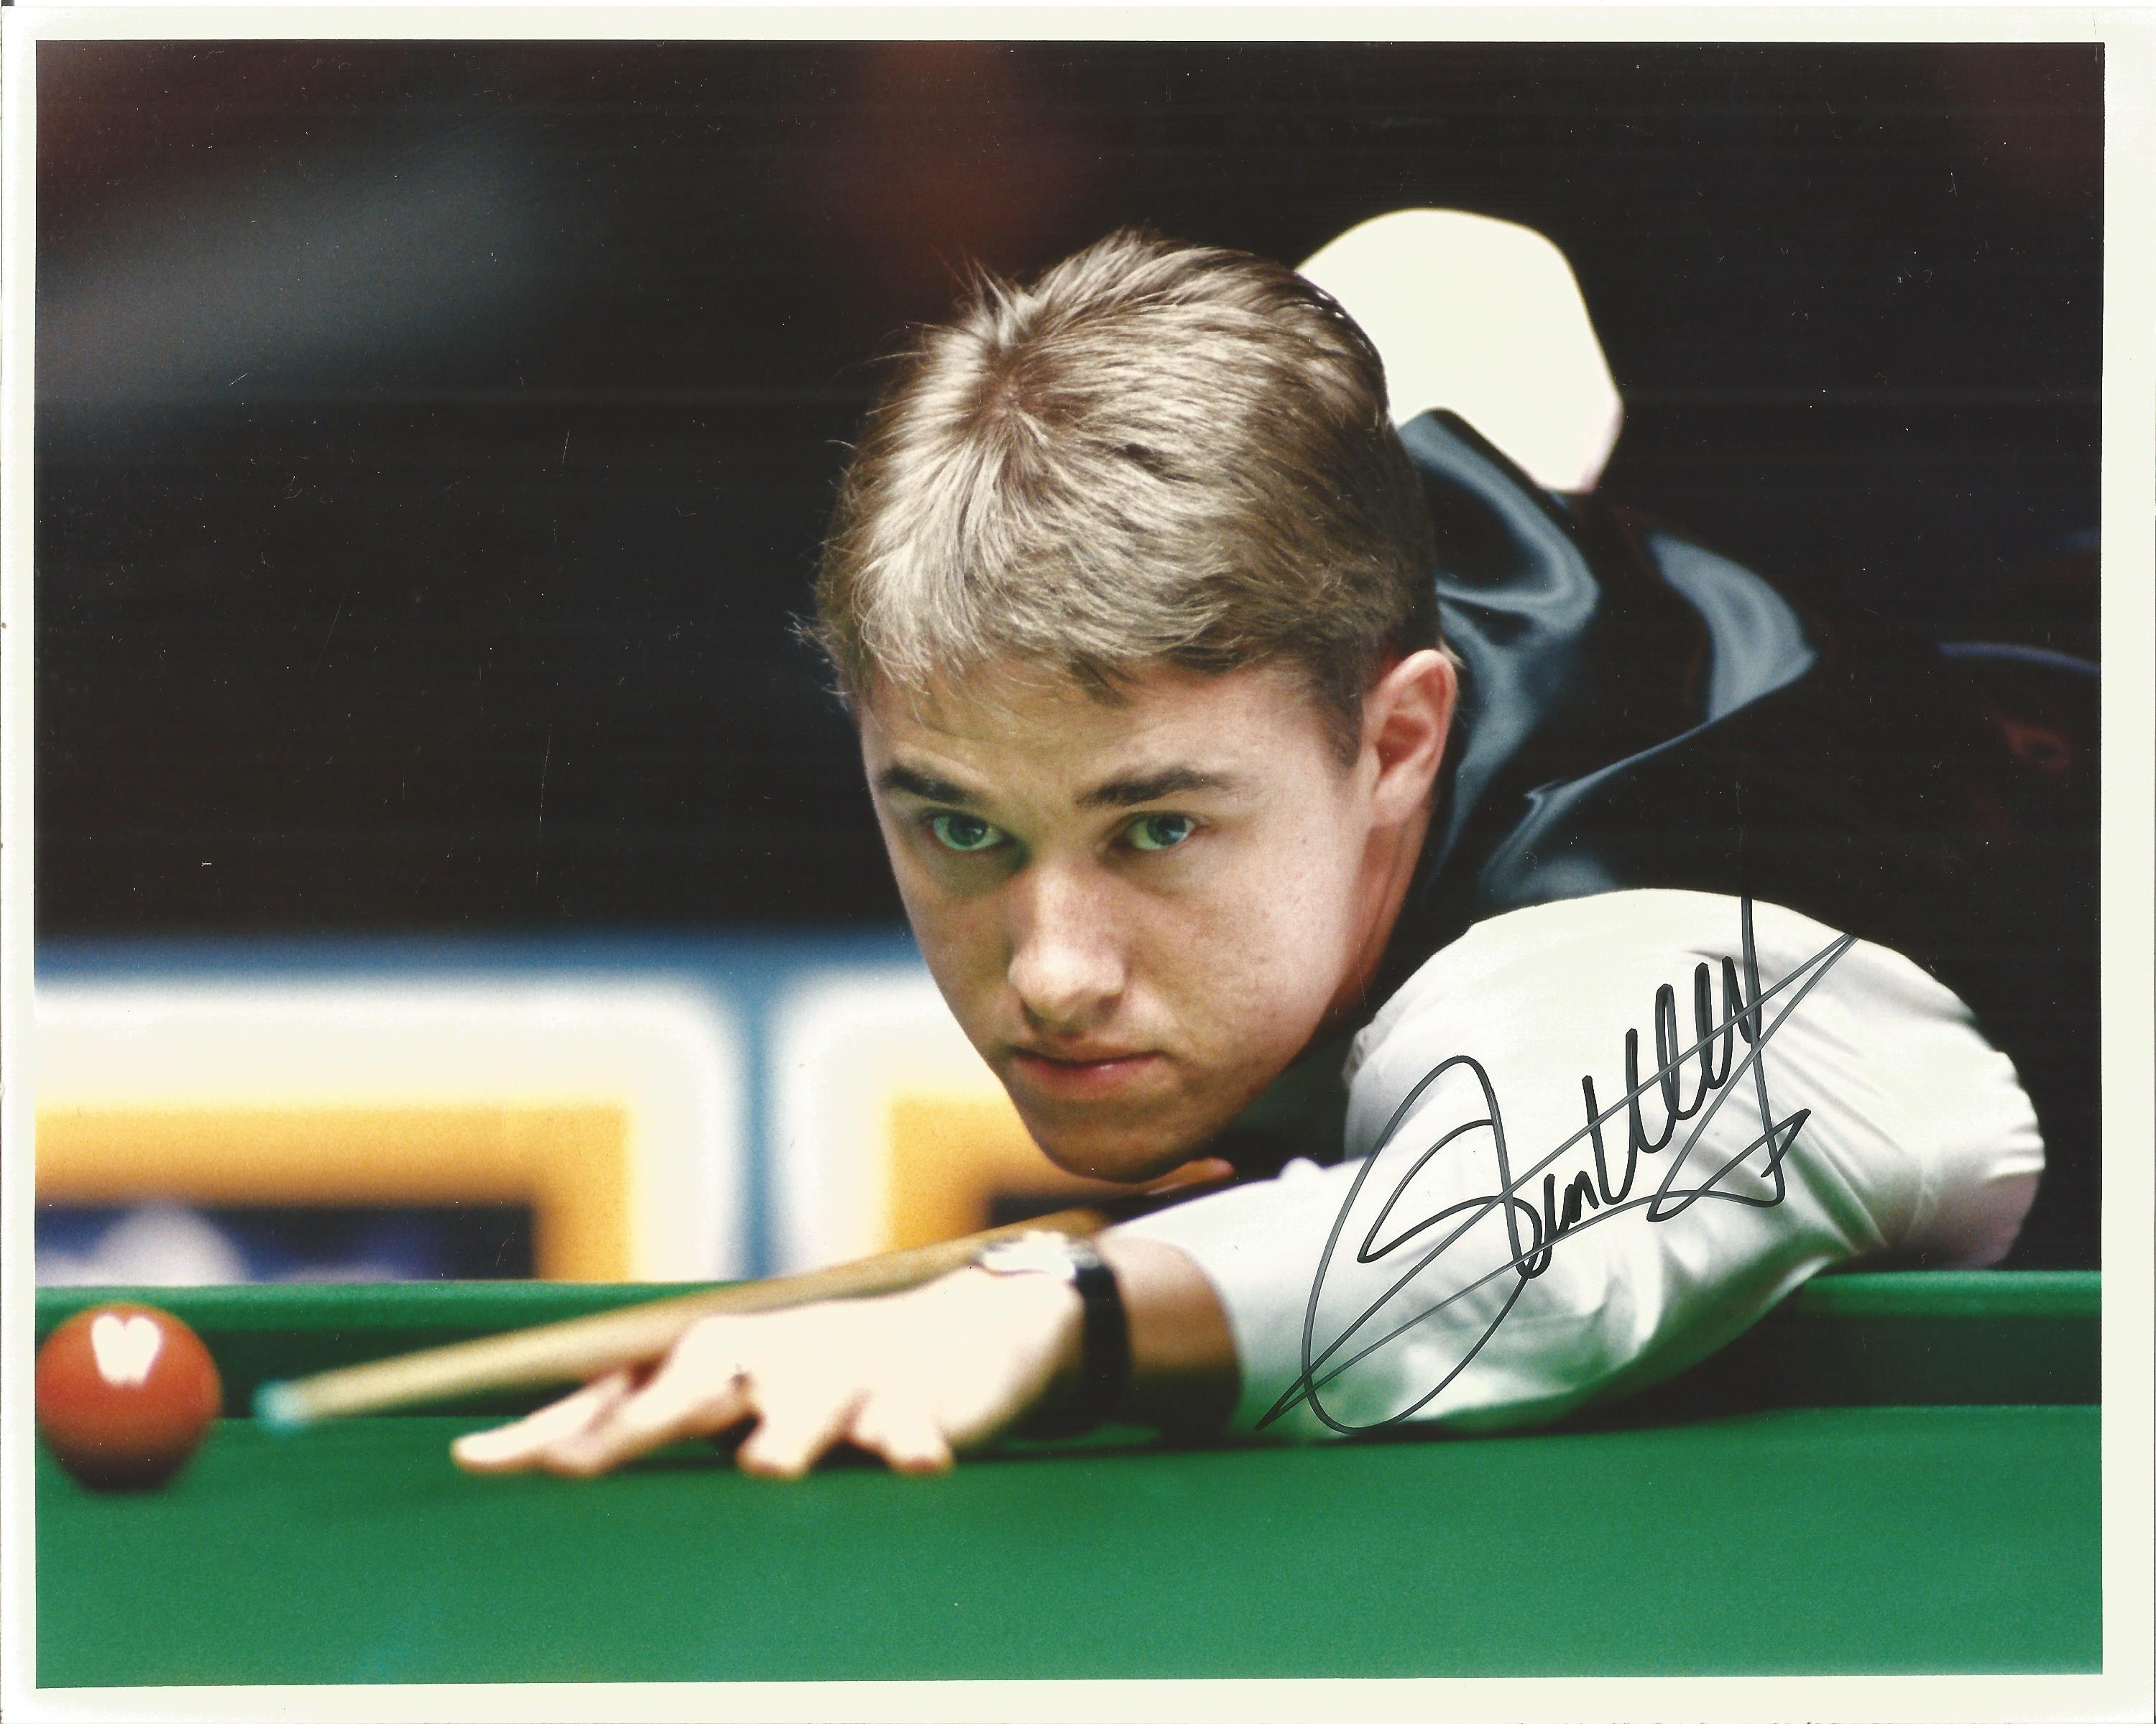 Steven Hendry Signed Snooker 1995 Press 8x10 Photo. Good Condition. All autographs are genuine